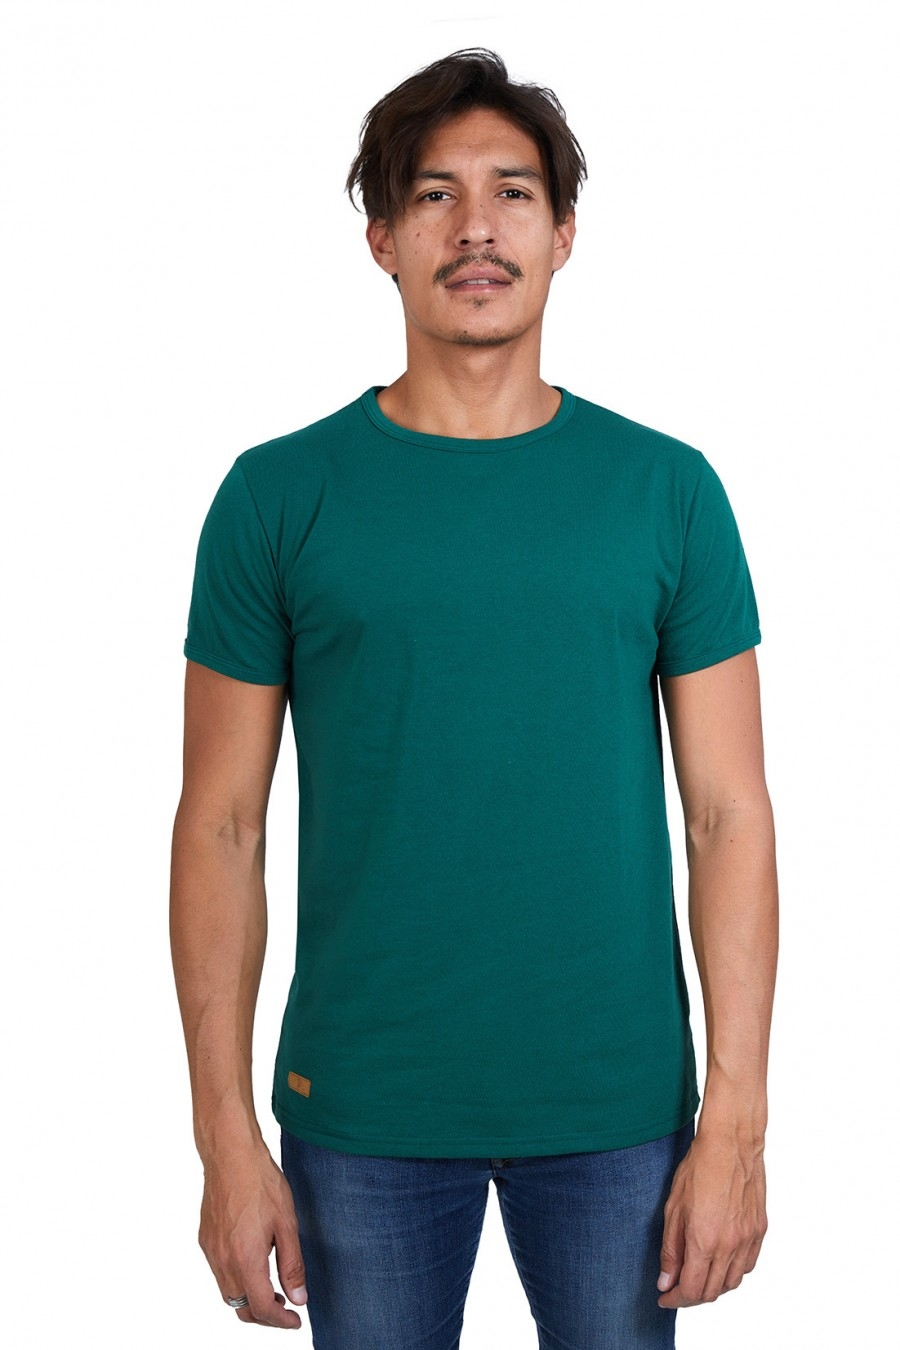 T-SHIRT HOMME MANCHE COURTE COL ROND VERT BOUTEILLE - Made in France & 100% Recyclé